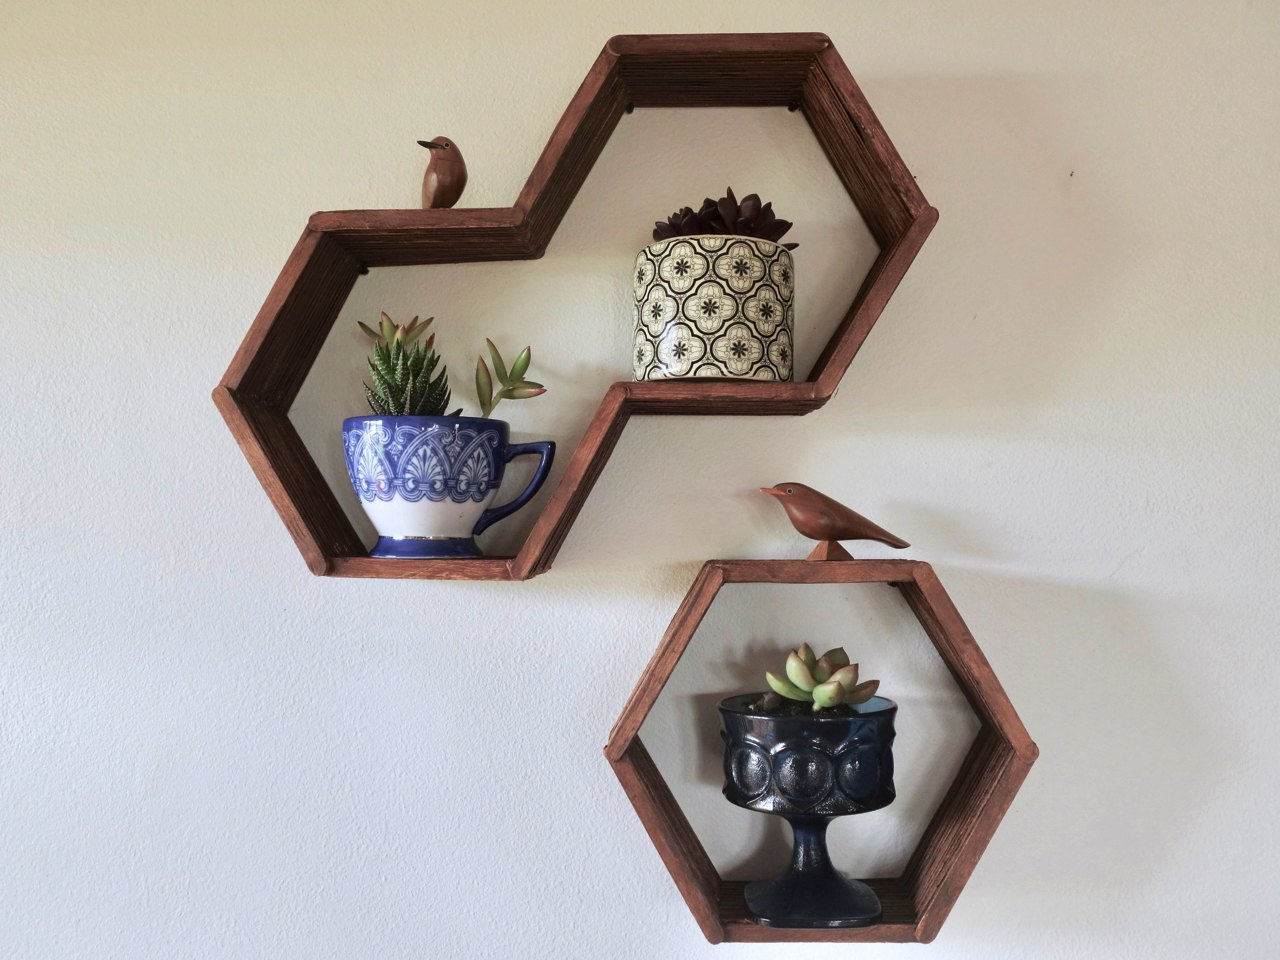 Hexagon Honeycomb Shelves Made With Popsicle Sticks